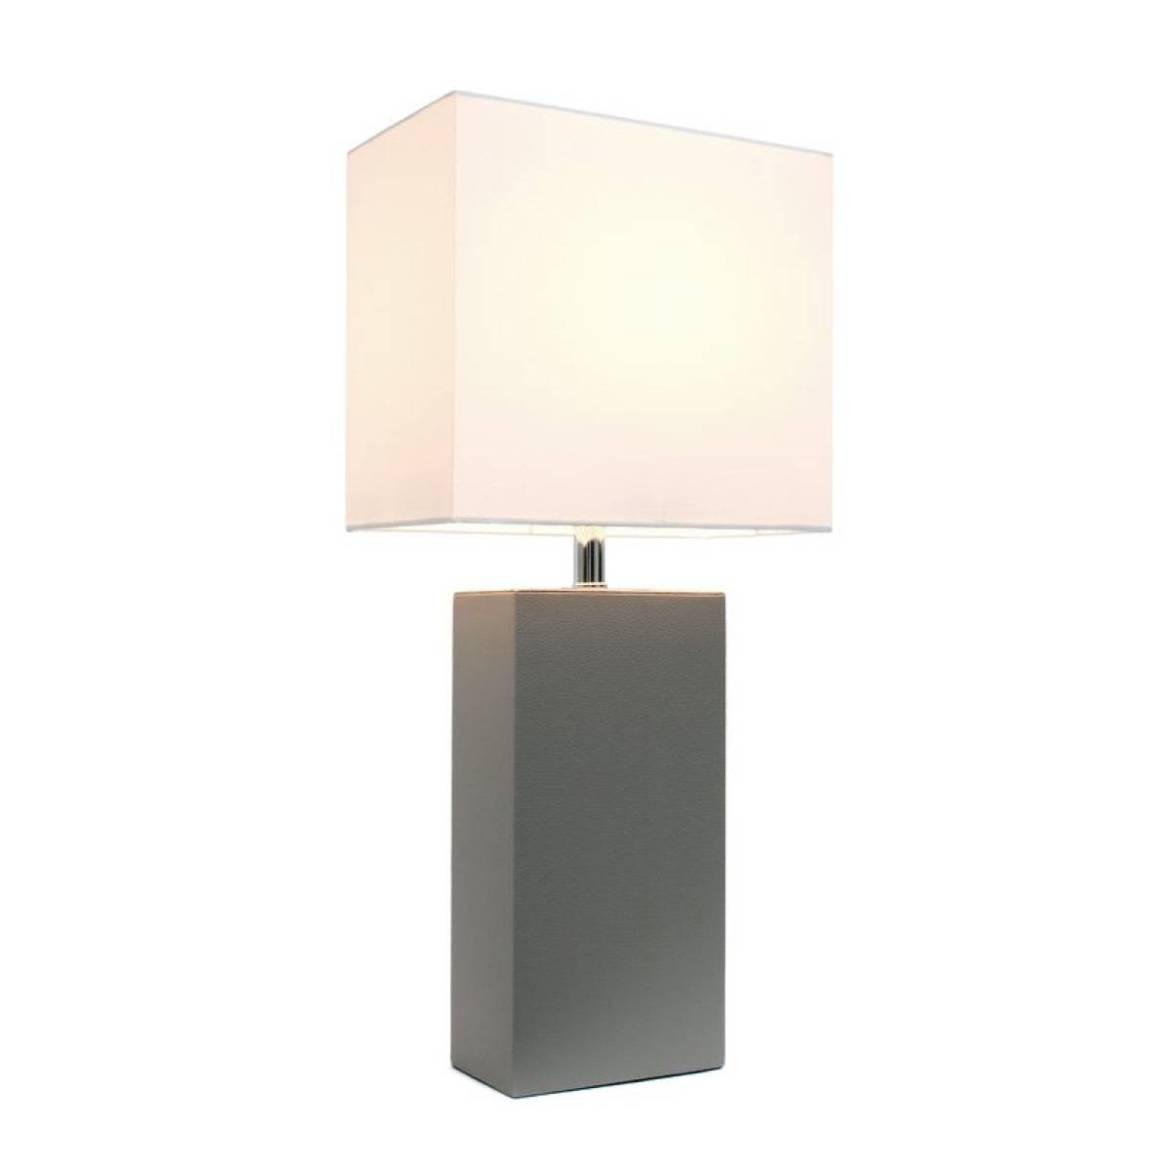 Little neck table lamp from All Modern